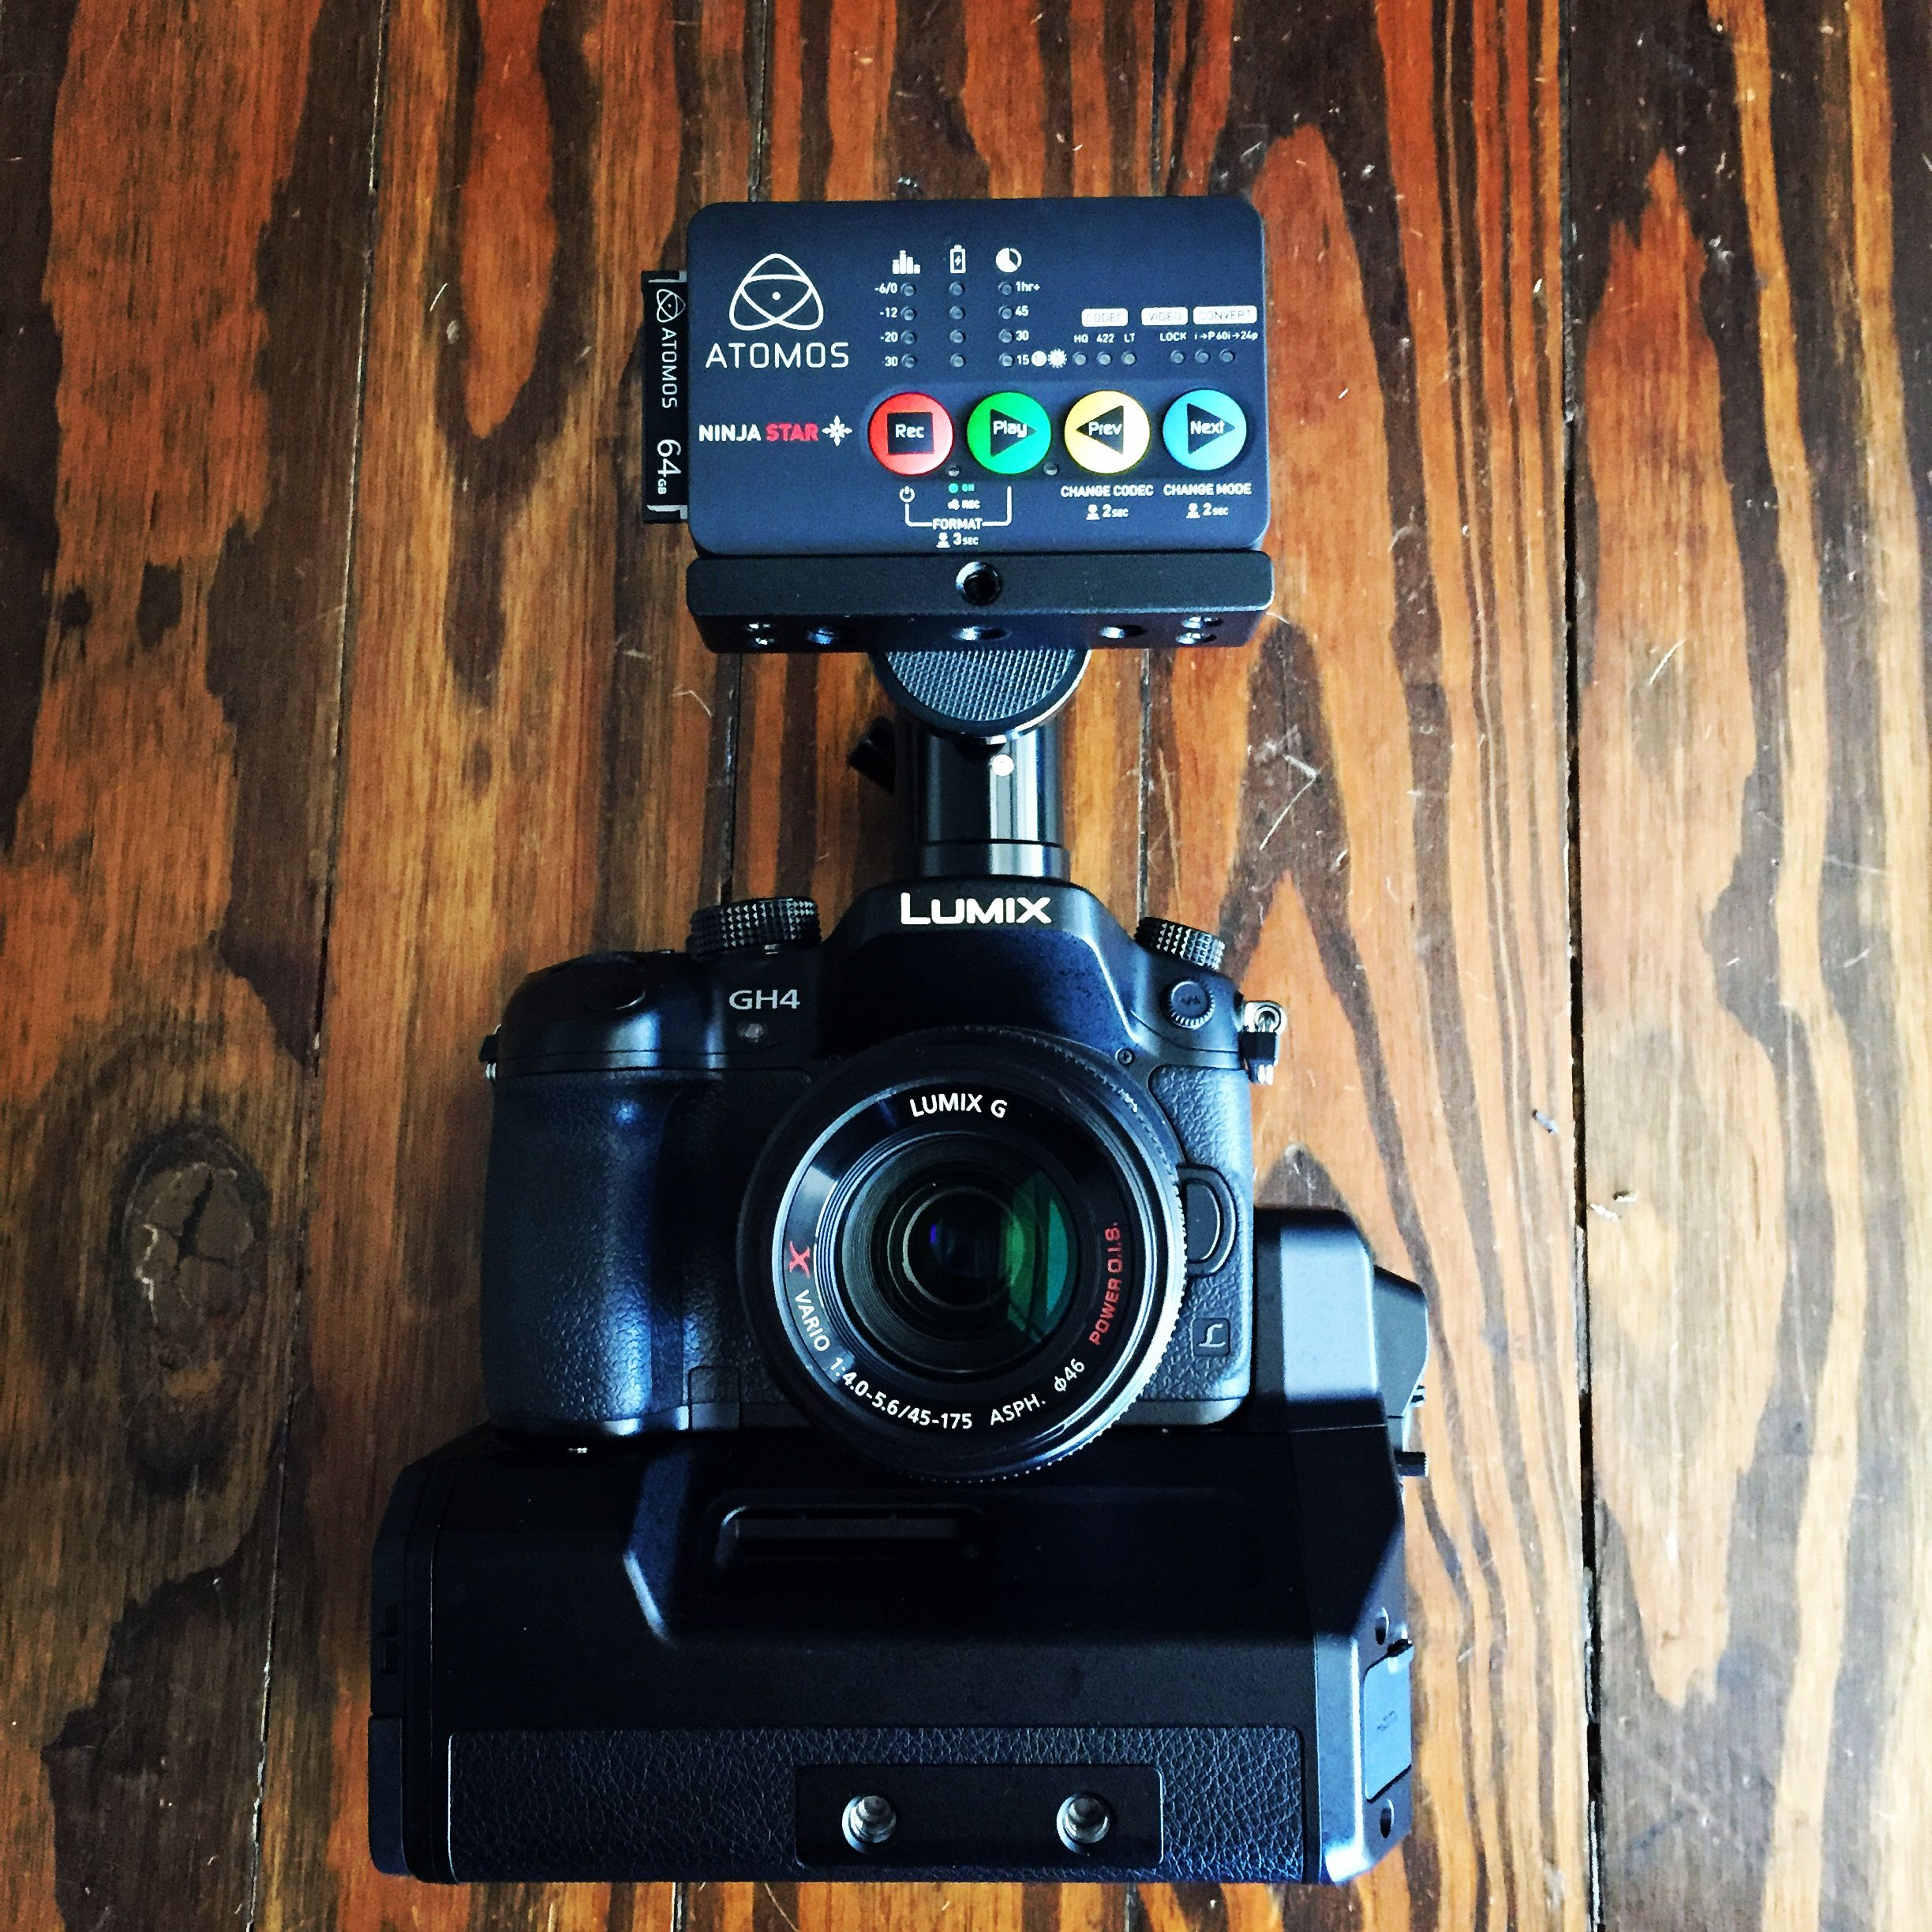 Panasonic GH4 Firmware Update Announced: TimeCode & Rec Start Stop